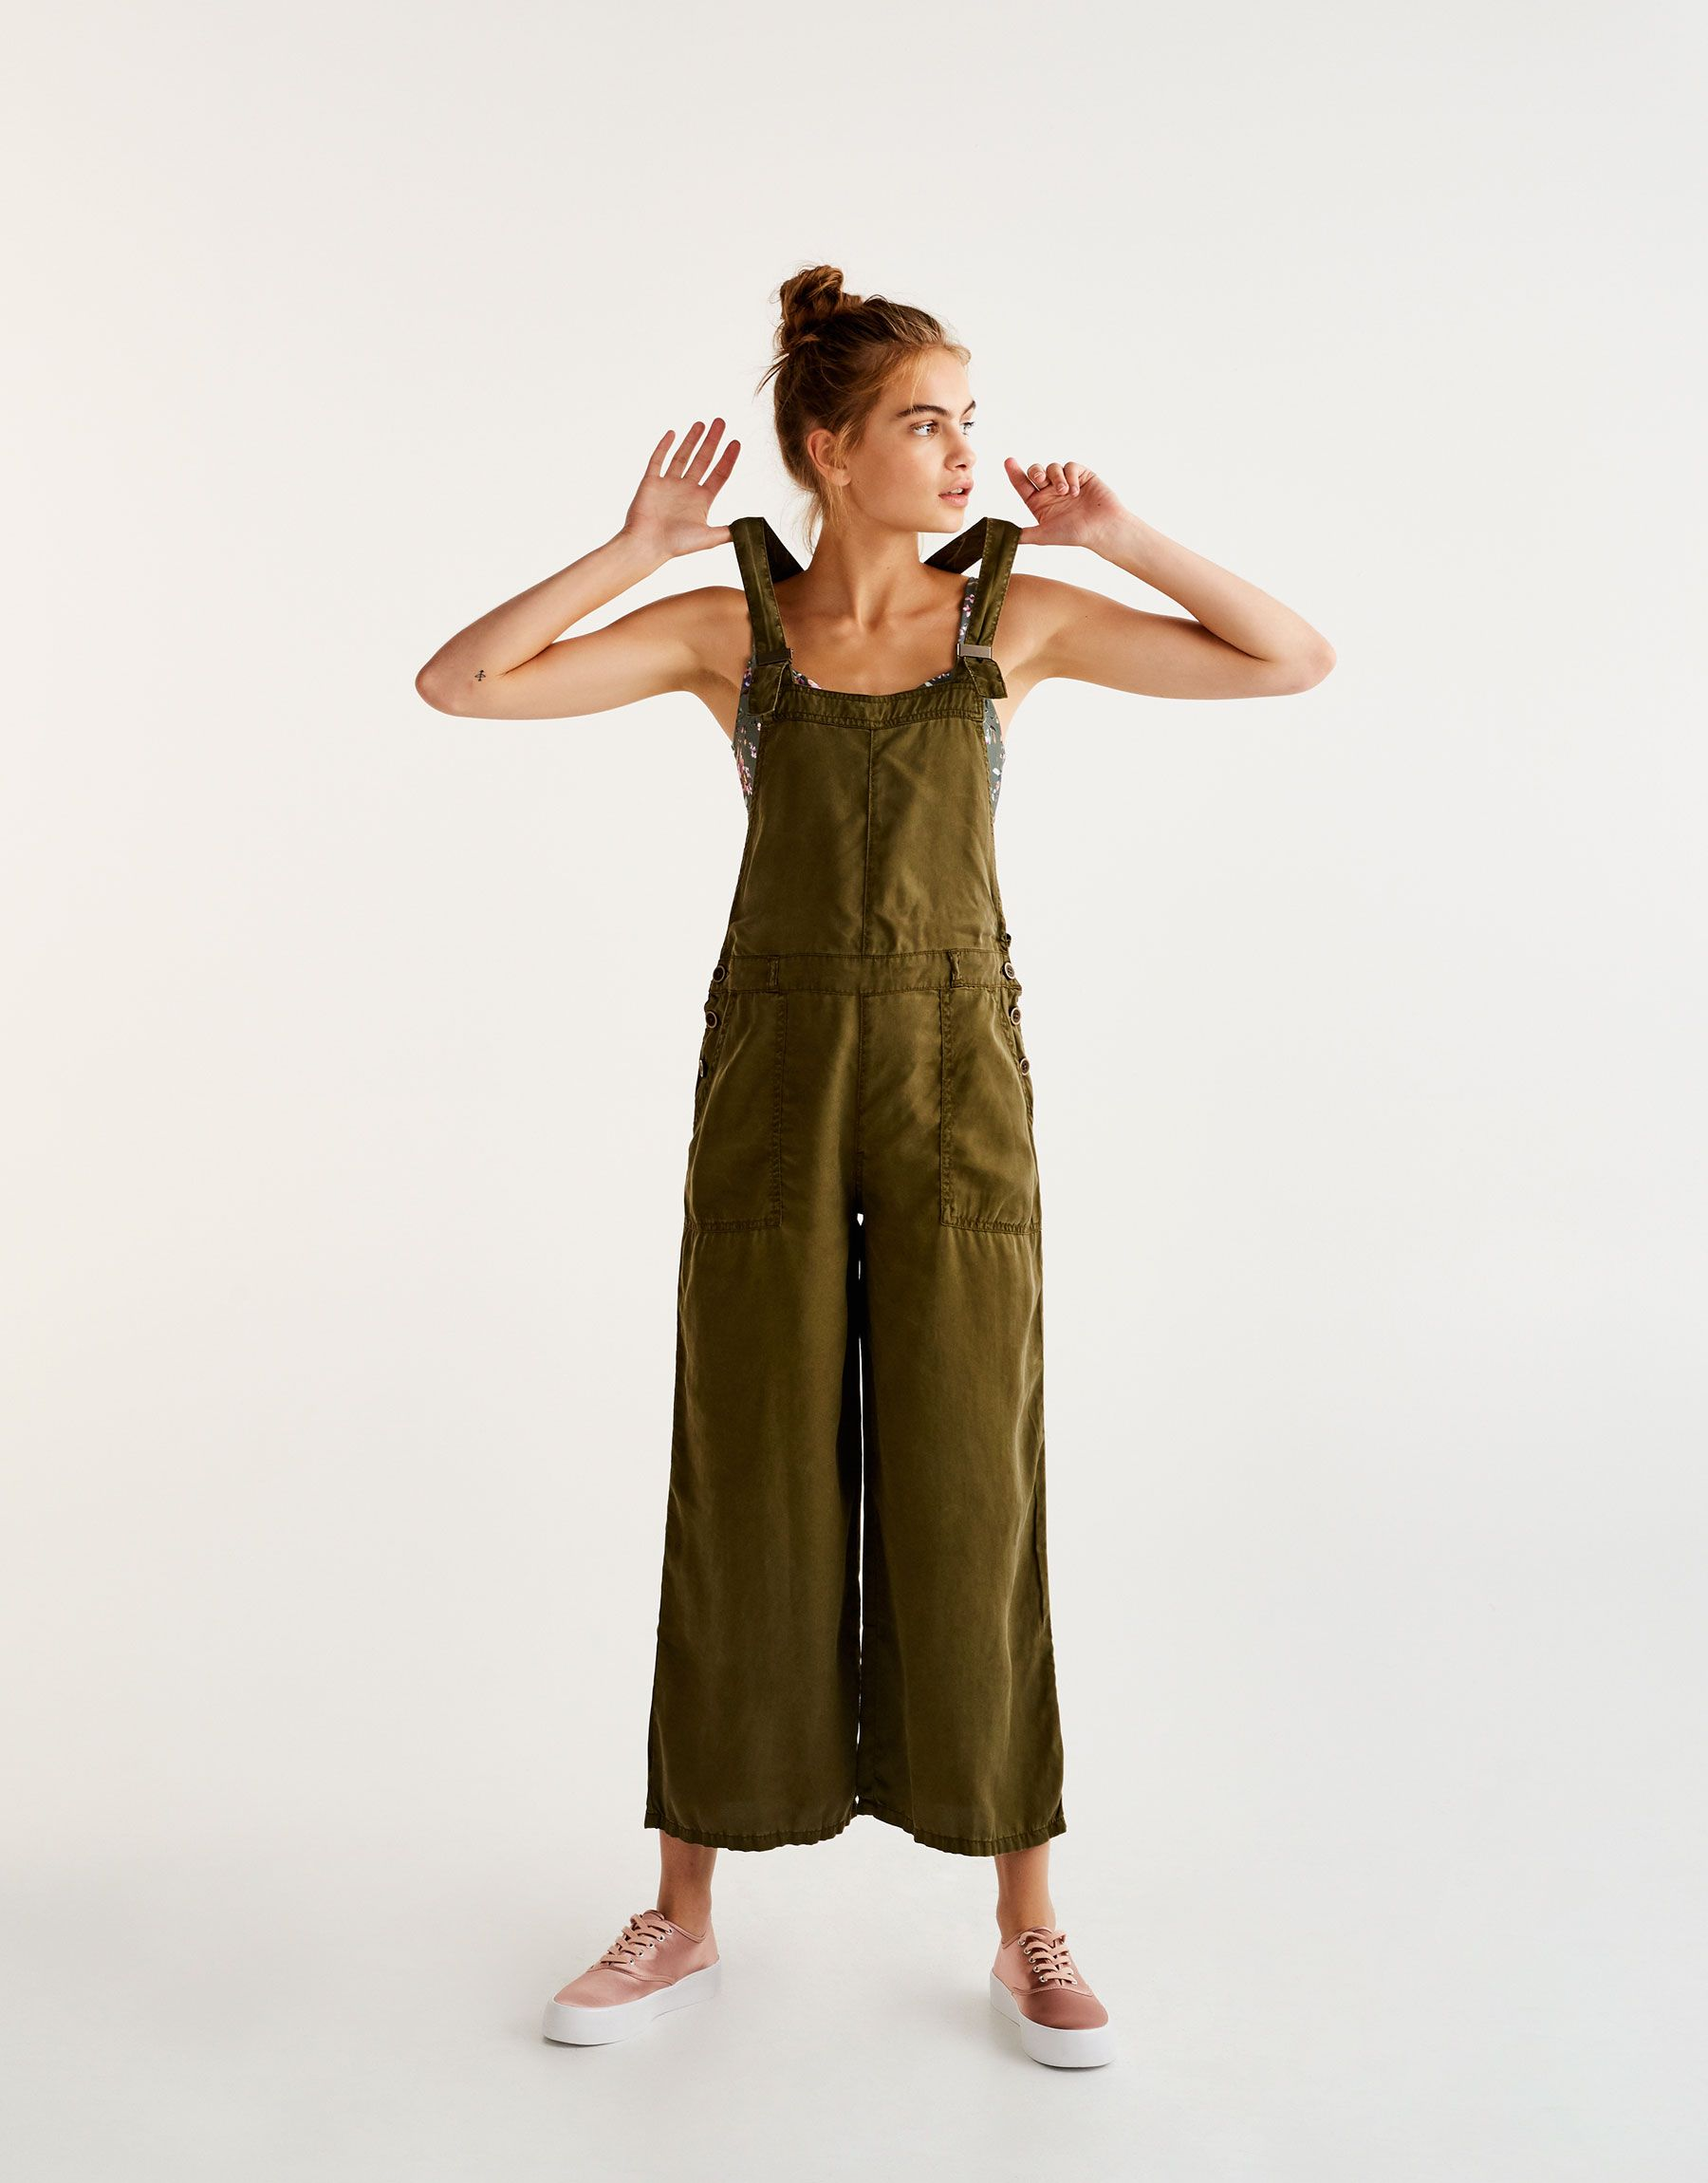 Pull Bear Woman Clothing Dungarees Amp Jumpsuits Oversized A Line Dungarees Khaki 09639320 I2017 Clothes Clothes For Women 90s Fashion